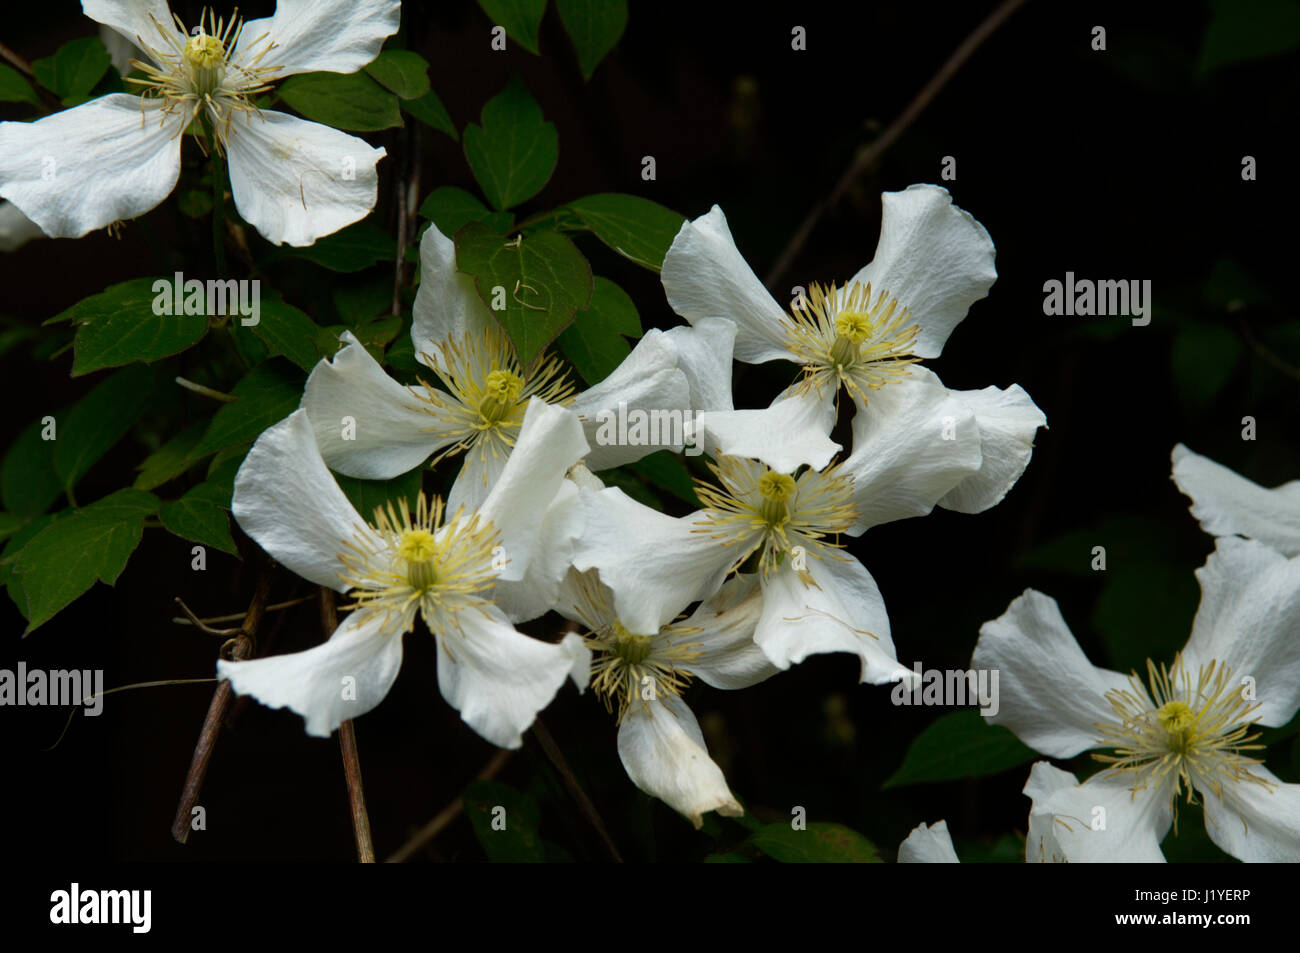 A group of clematis flowers with delicately patterned white petals - Stock Image